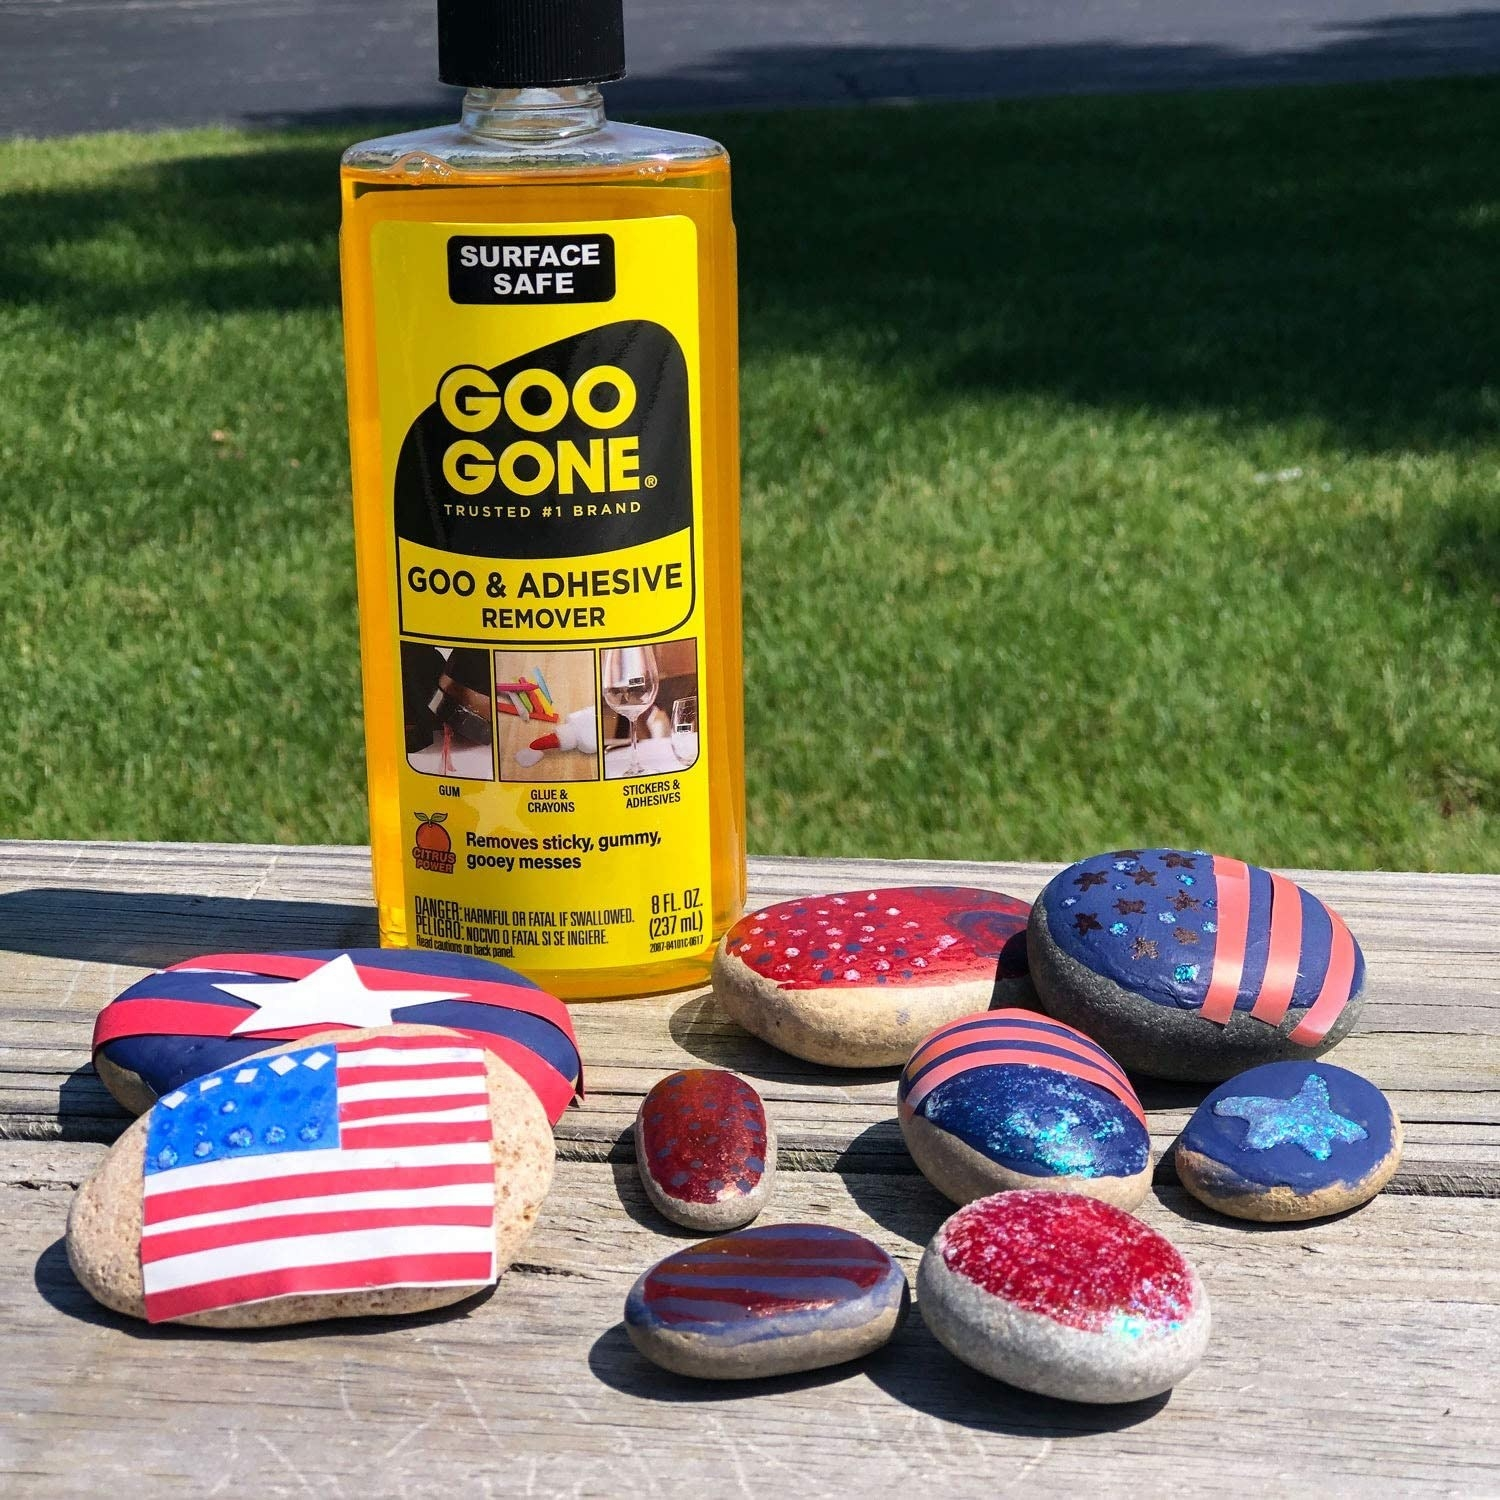 A bottle of adhesive remover next to a bunch of painted rocks